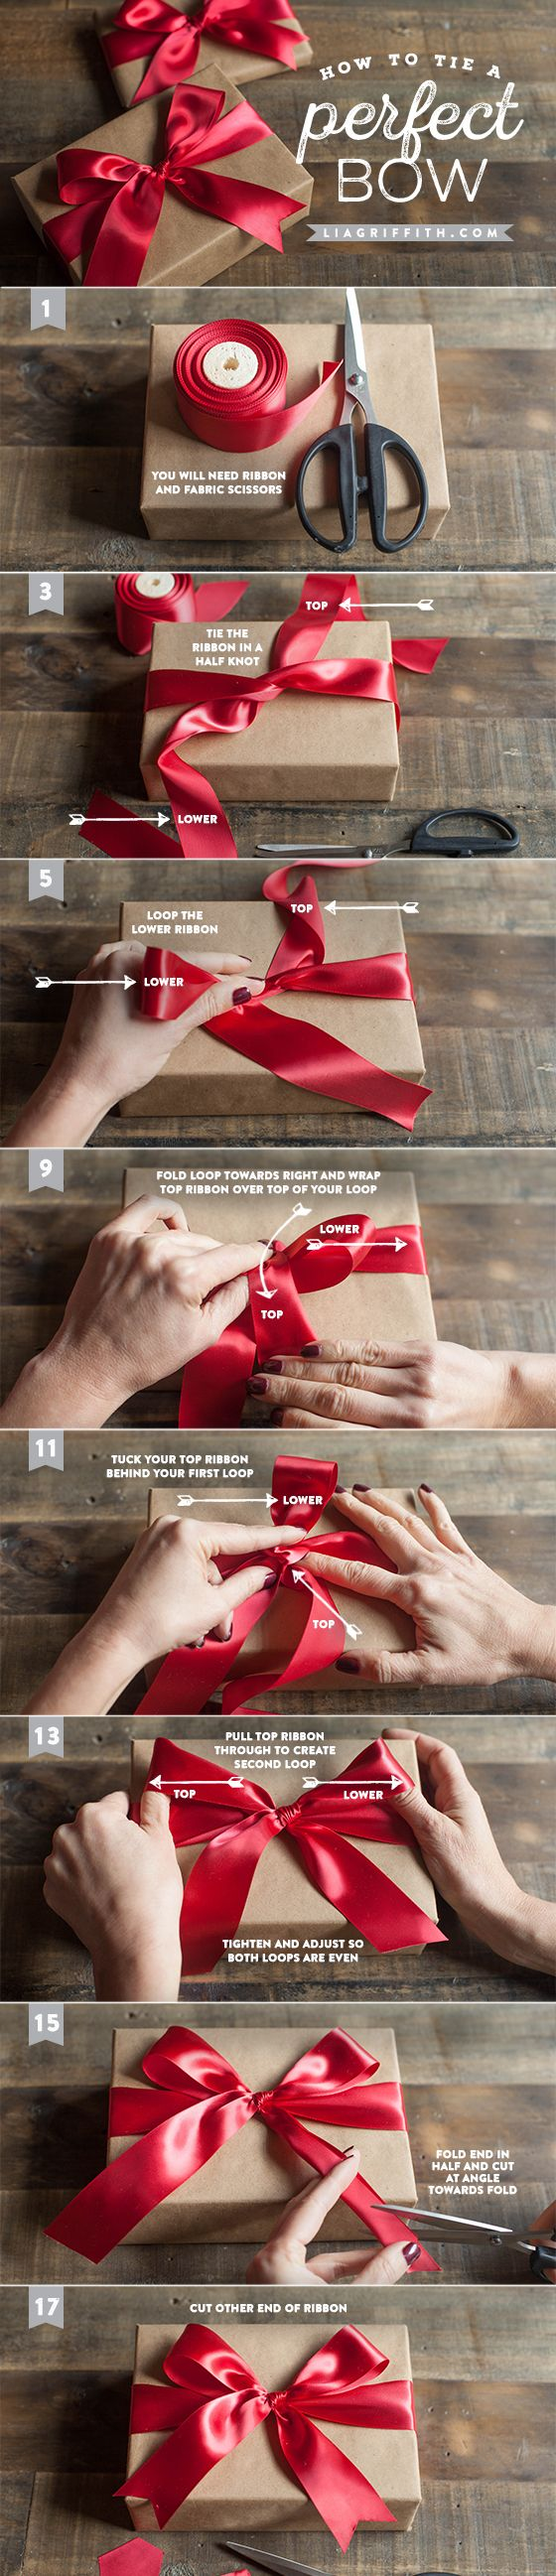 Tie a Perfect Bow for Your Gifts.